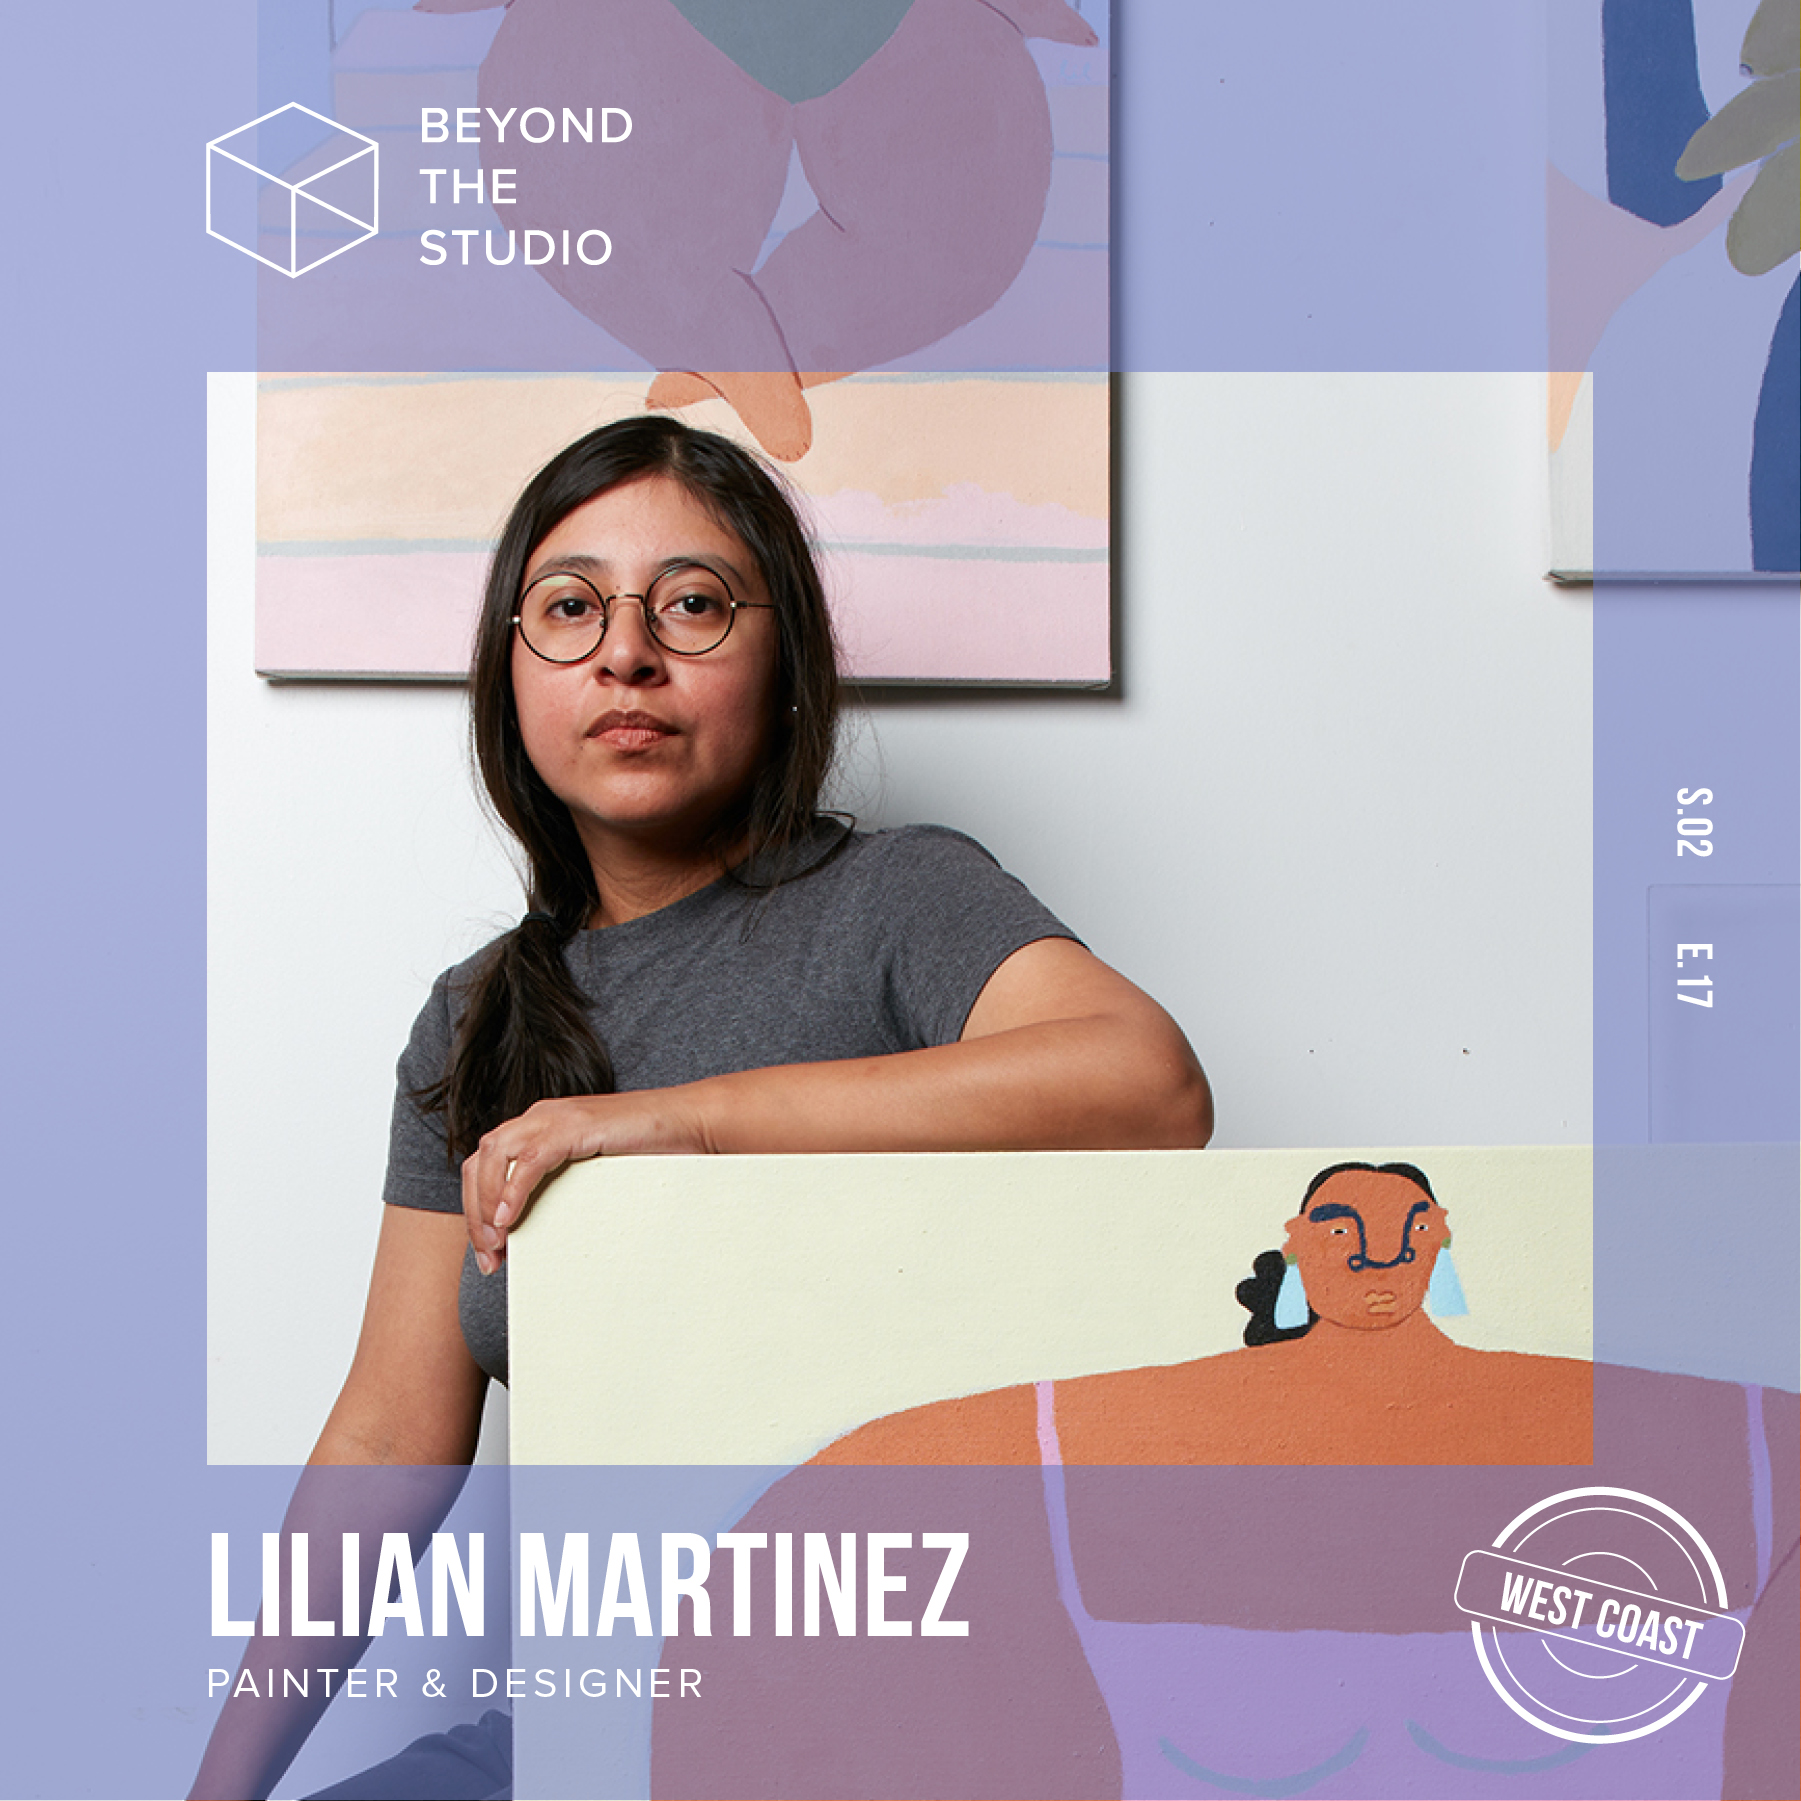 AnnouncementImage_LilianMartinez.jpg